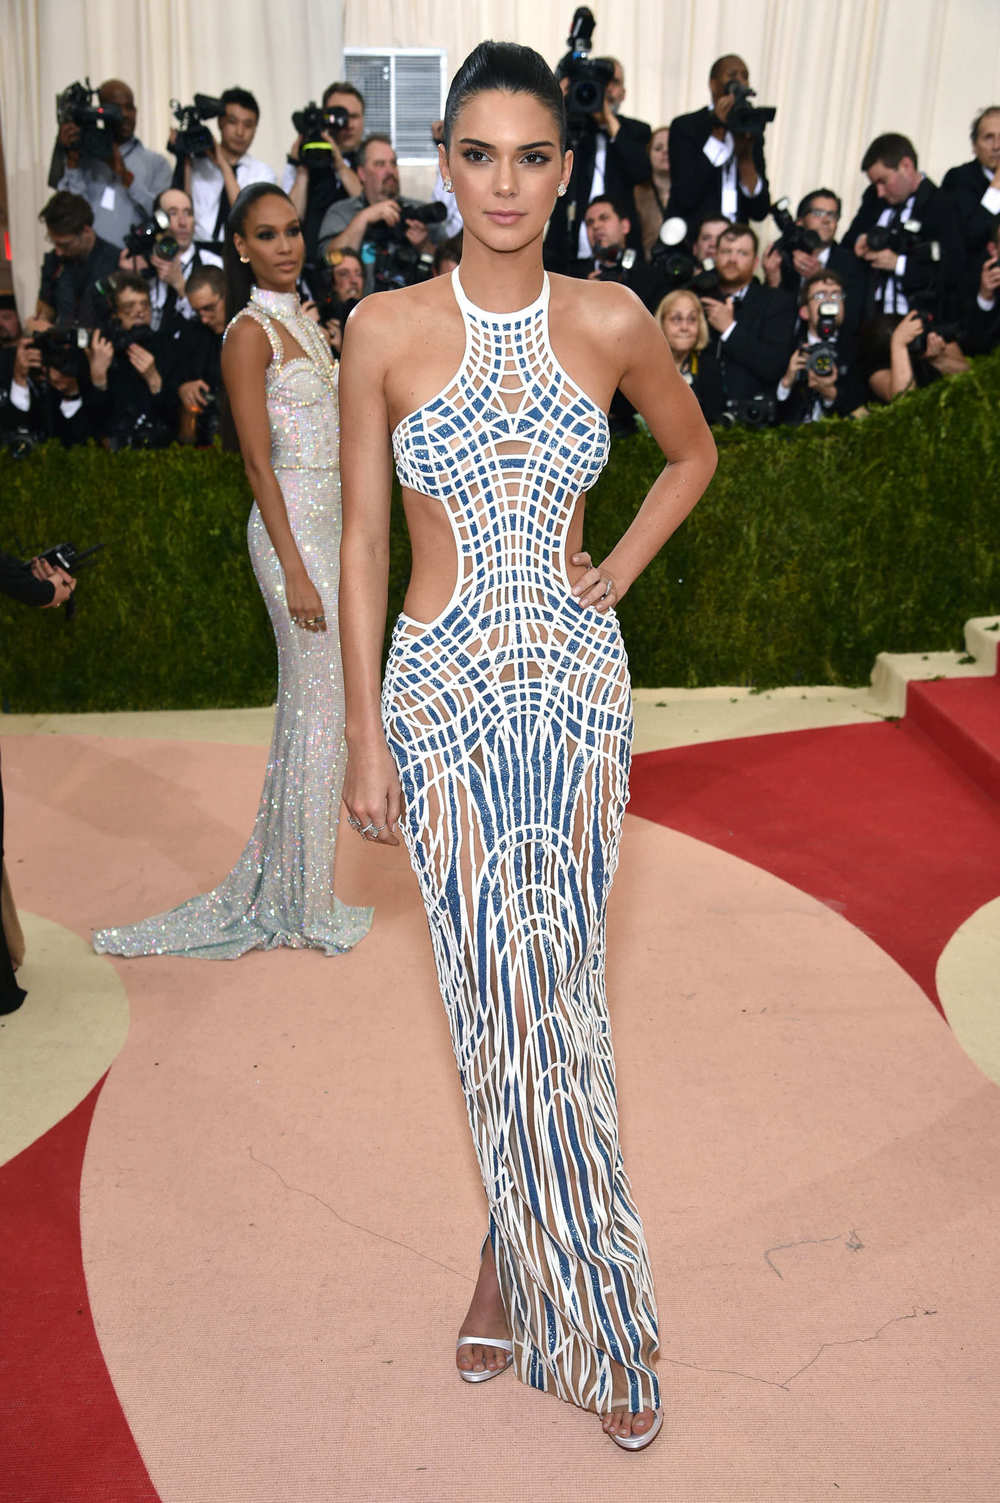 Kendall Jenner in Atelier Versace at the Met Gala 2016.